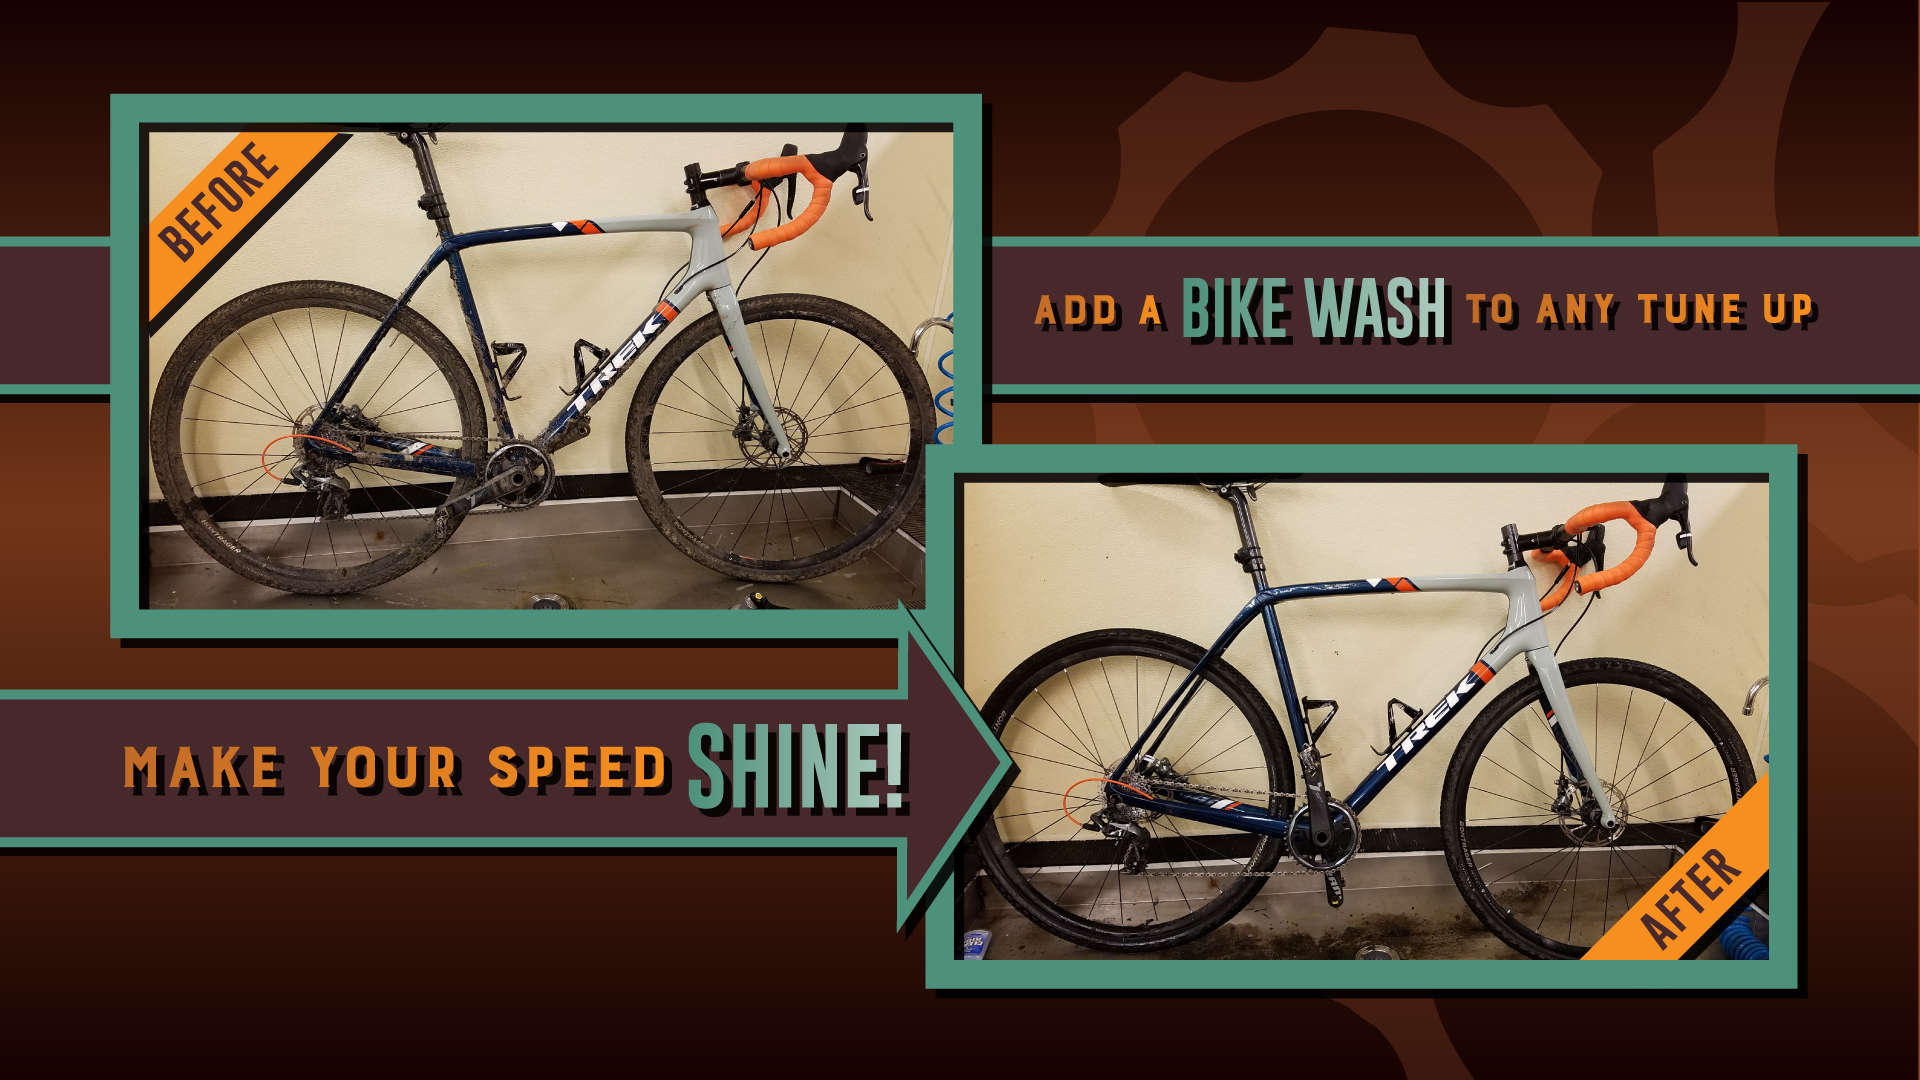 Add a bike wash to any tune up.